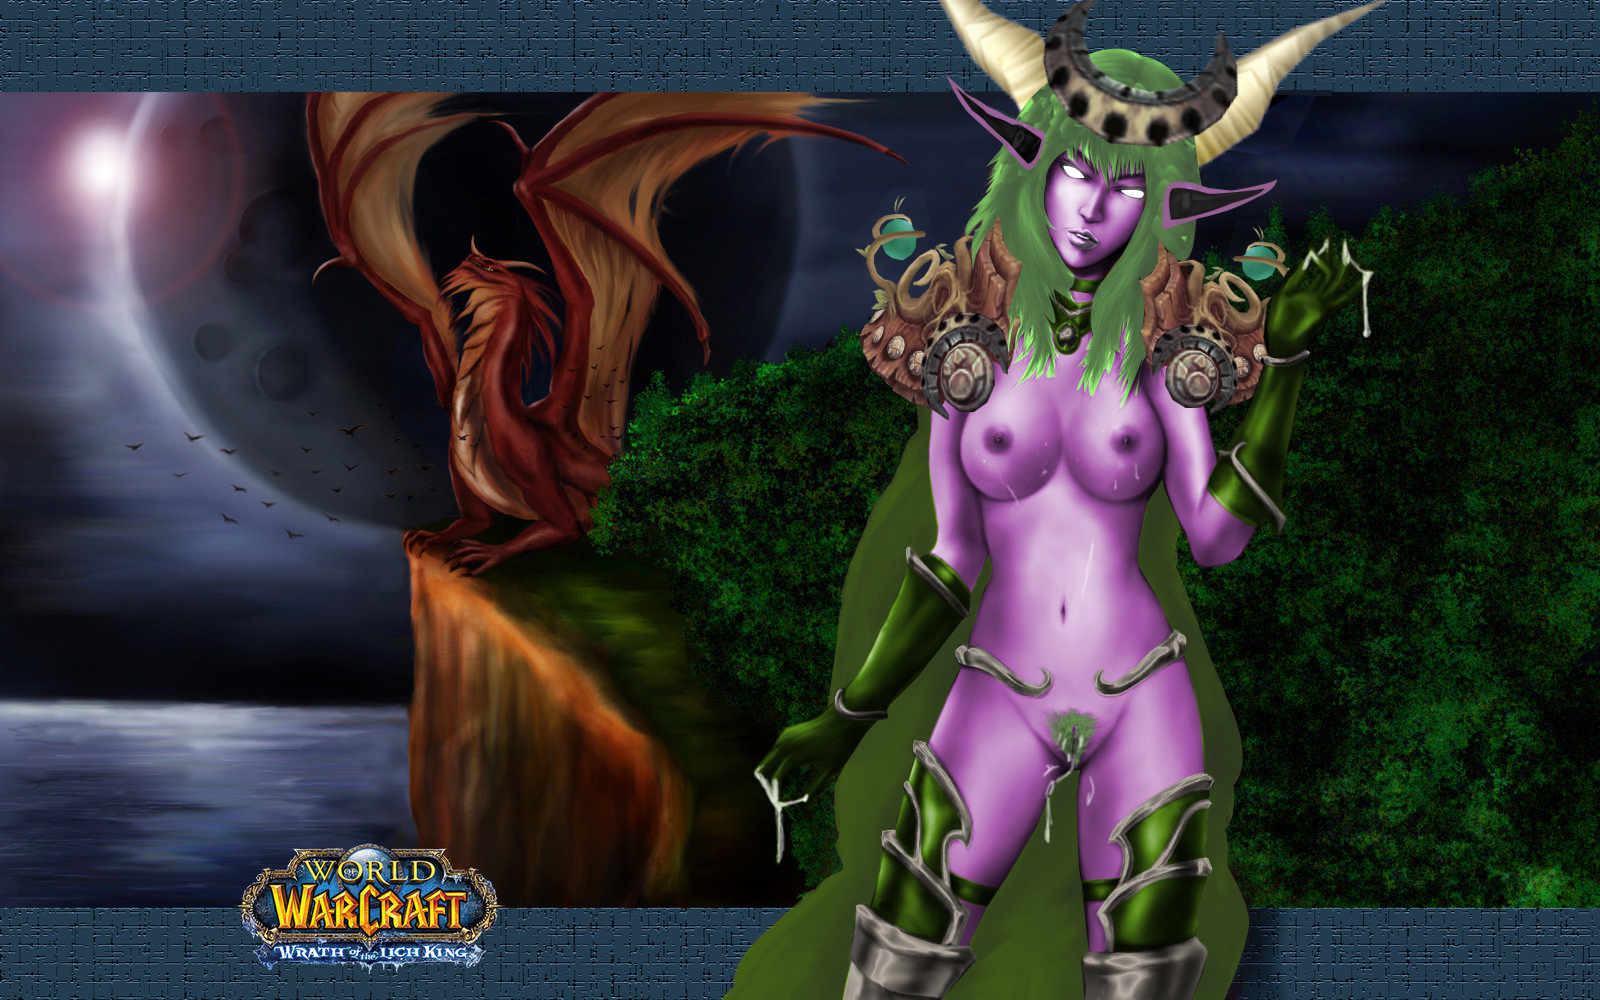 Nude sorceress warcraft sex pic